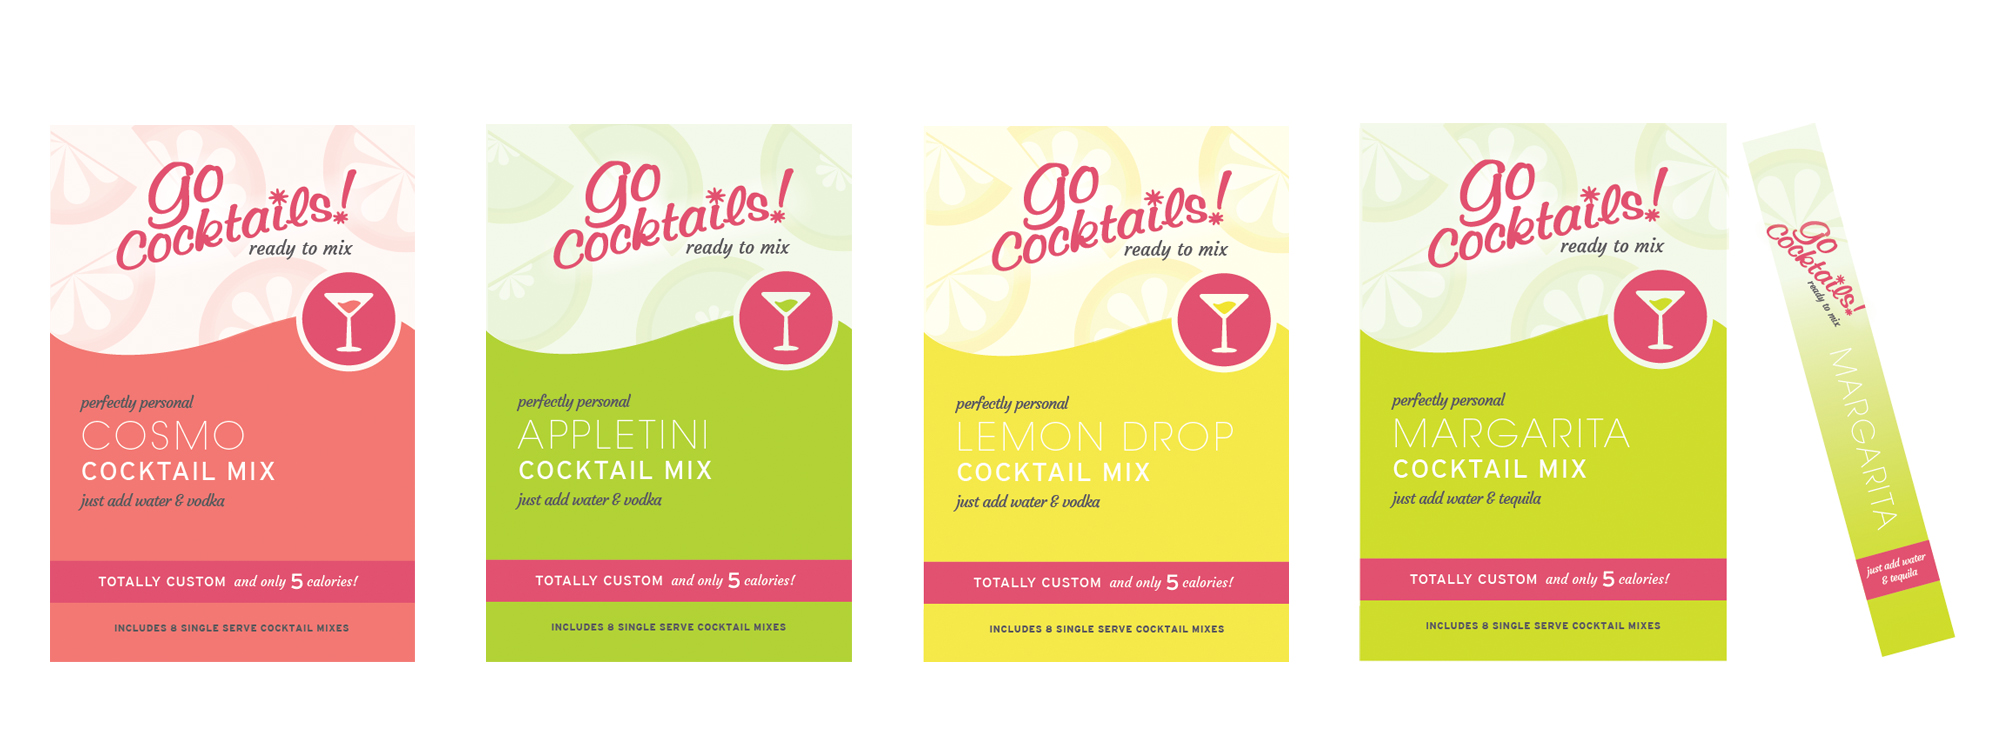 Go-Cocktails-Package-Redesign.jpg